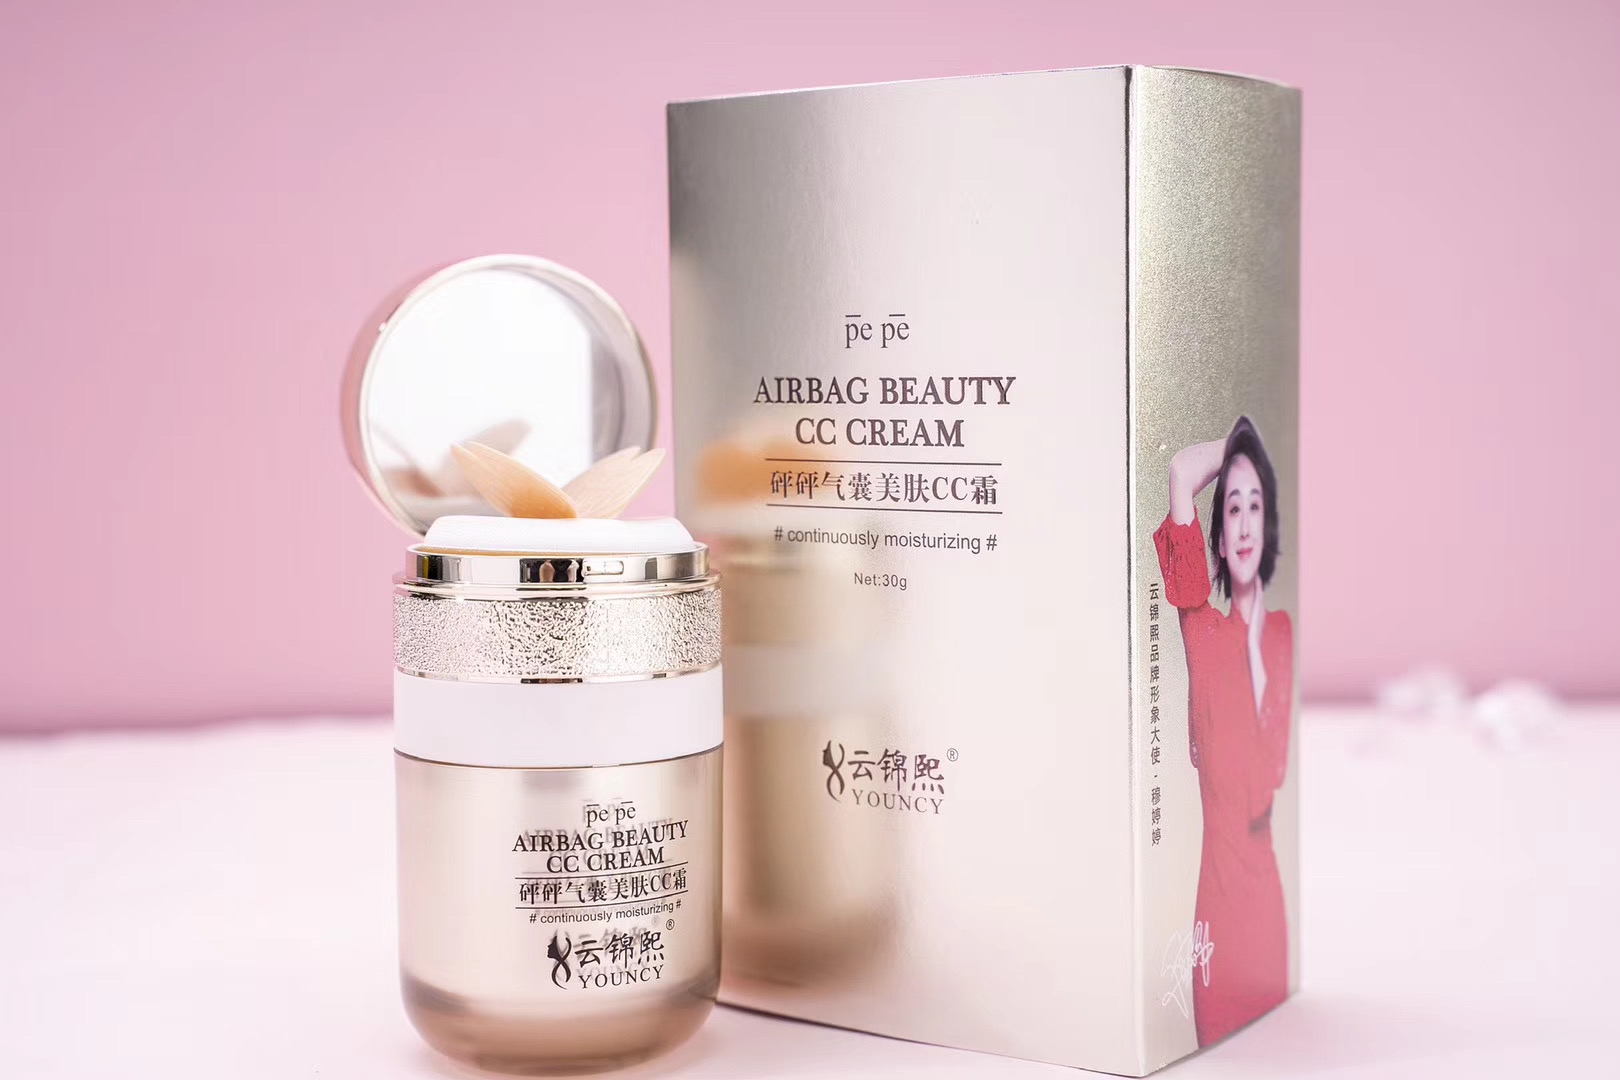 Genuine Full Size Yunjin xibang air bag beauty CC cream with long-lasting make-up without sticking powder, very transparent and high-quality